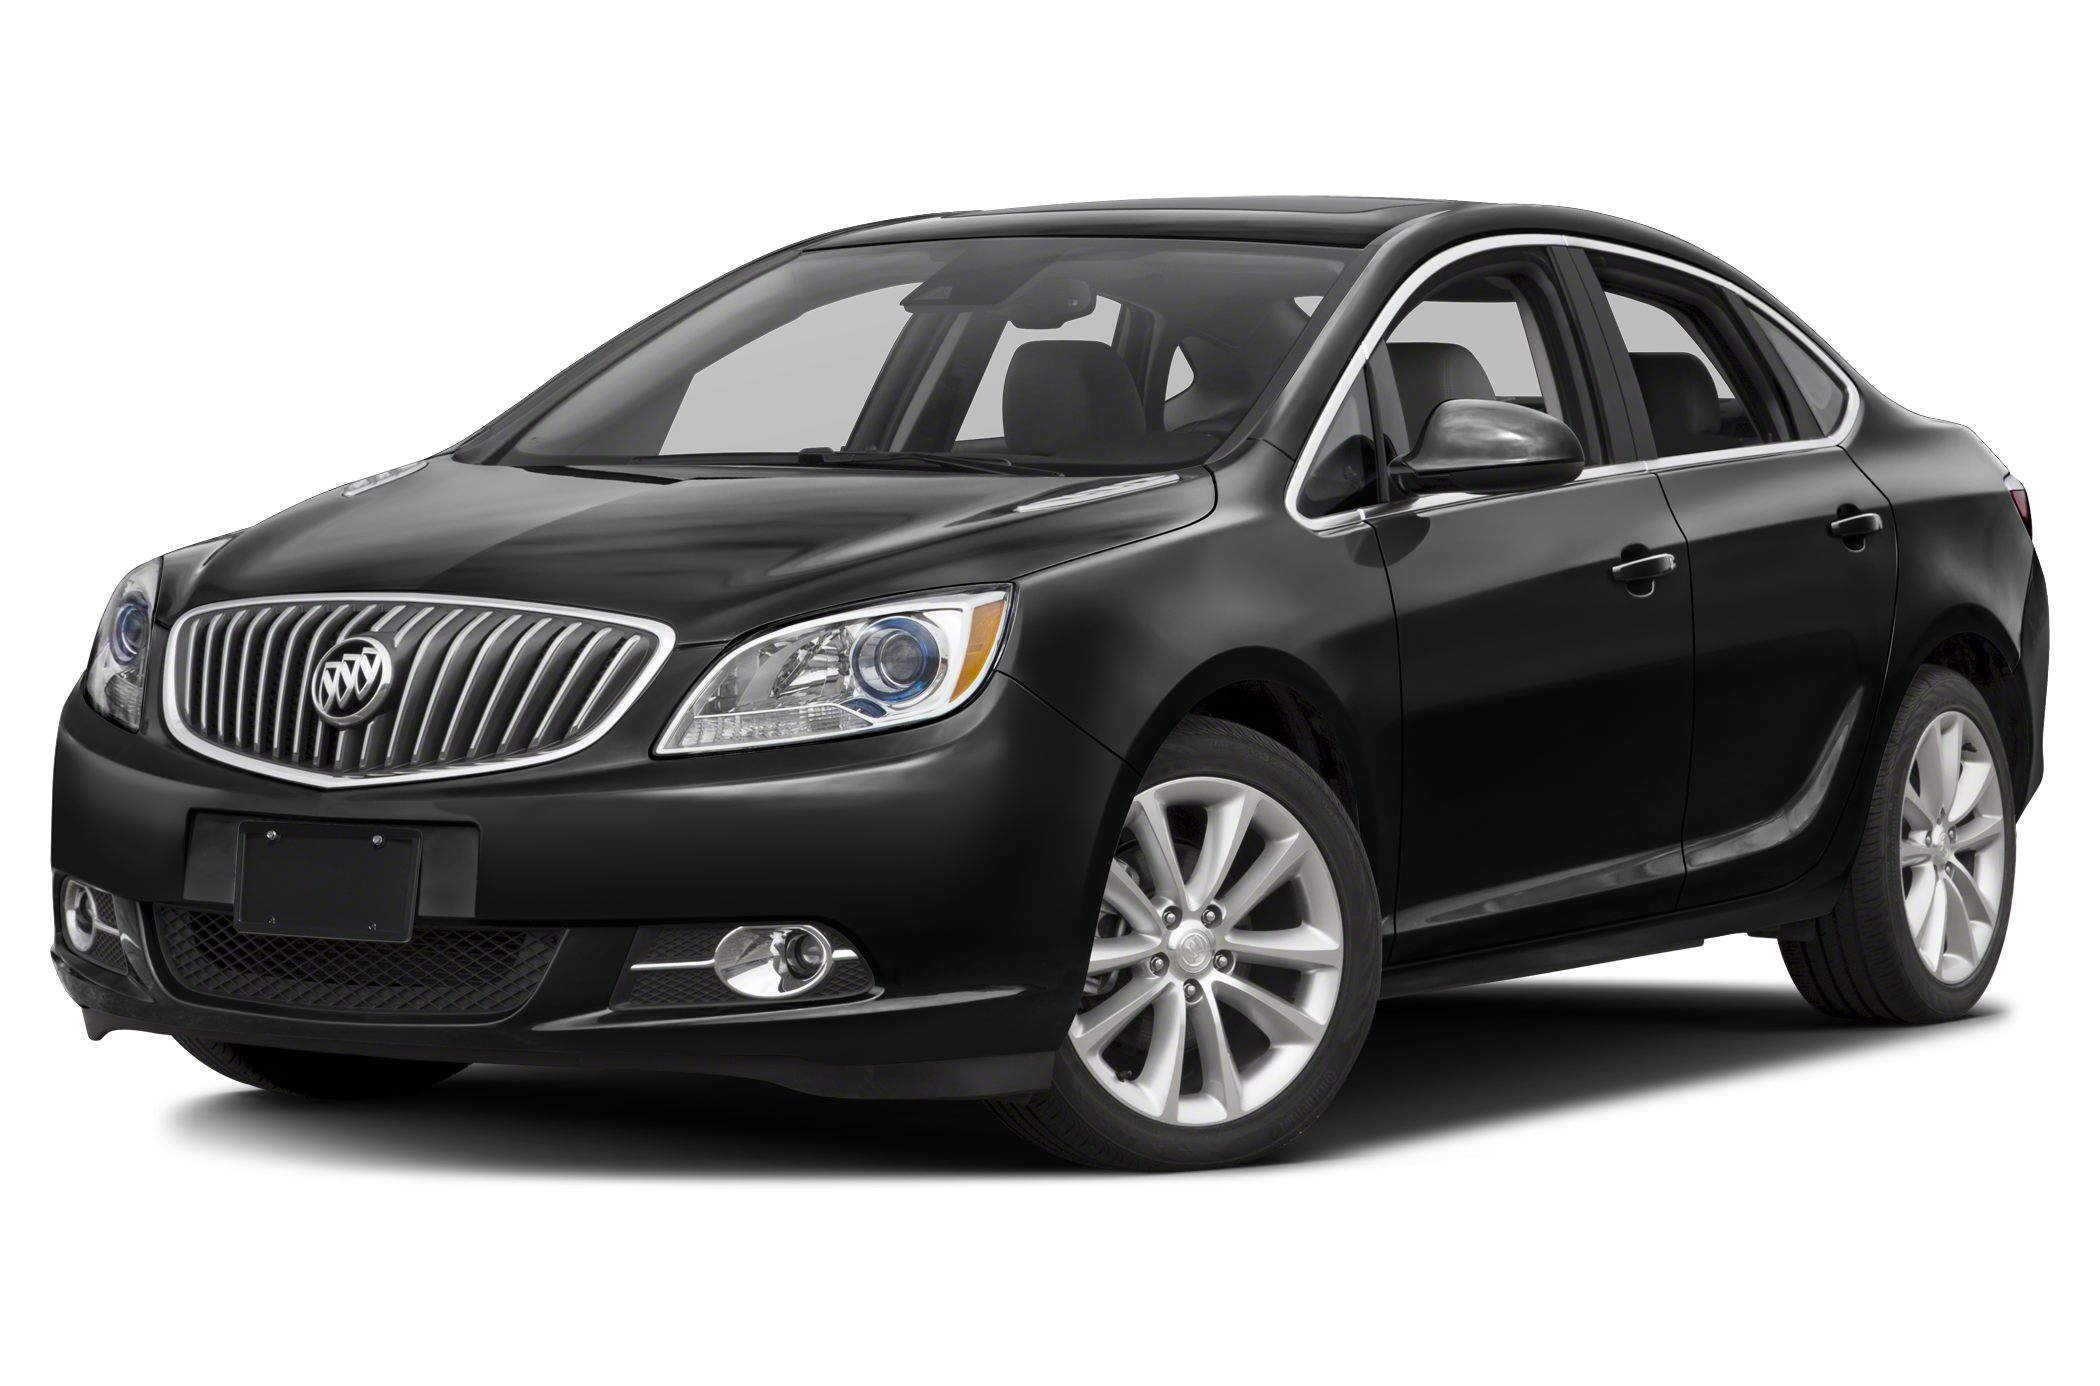 2016 Buick Verano Base This 2016 Buick Verano comes equipped with everything a driver needs inclu